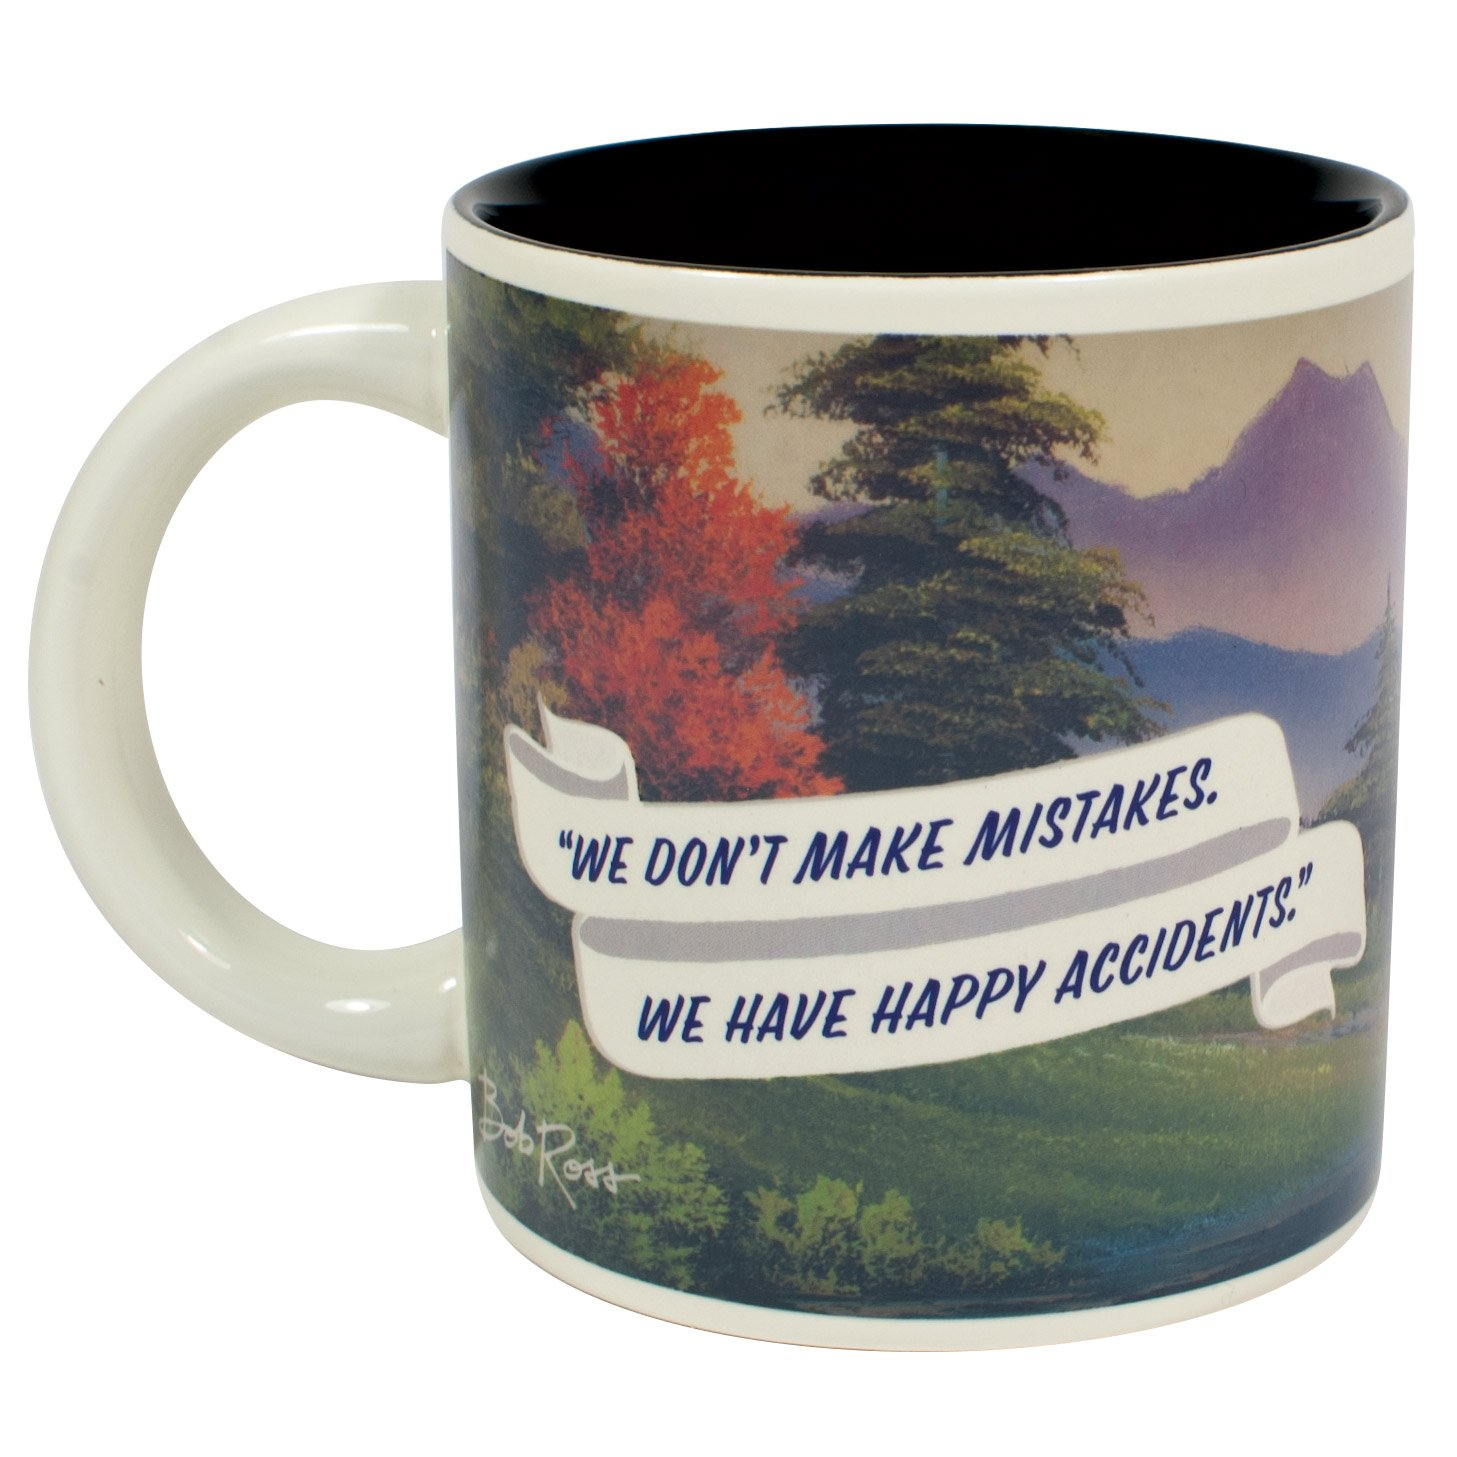 Bob Ross Heat Changing Mug - Add Coffee or Tea and a Happy Little Scene Appears - Comes in a Fun Gift Box by The Unemployed Philosophers Guild (Image #4)